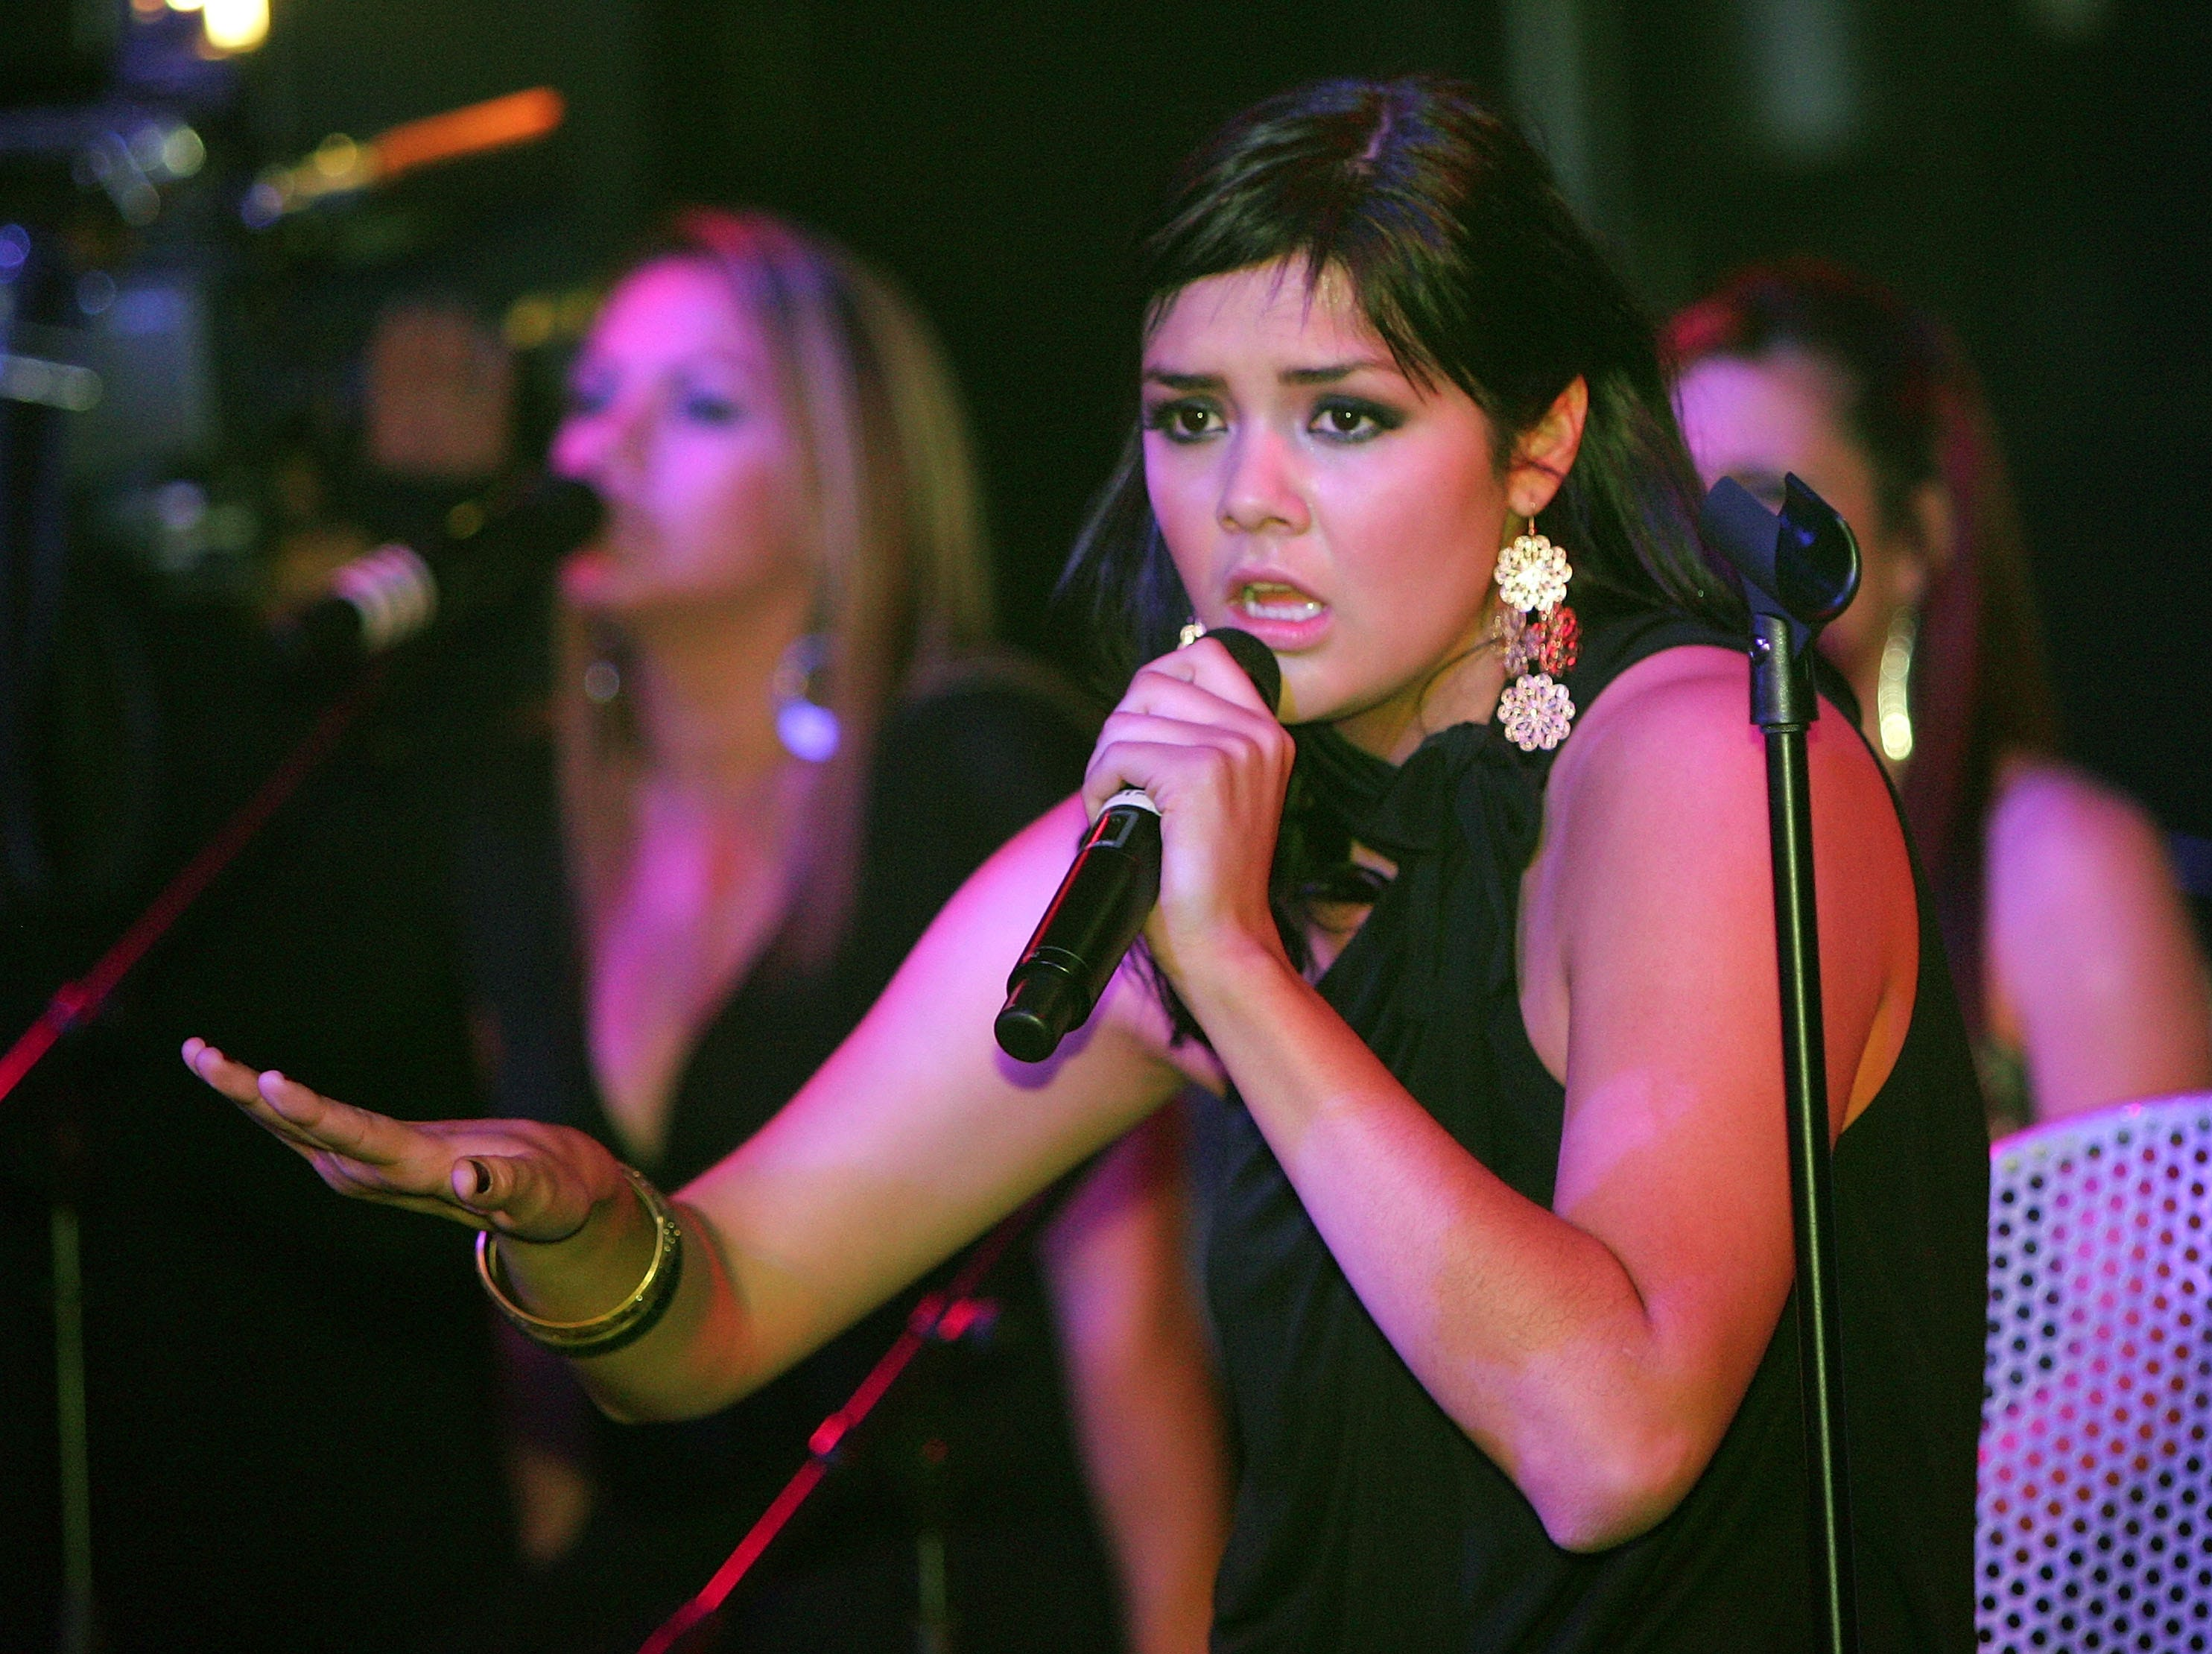 Yuridia performs at the Sony BMG pre-Latin Grammy Awards party on Nov. 8, 2007, in Las Vegas.